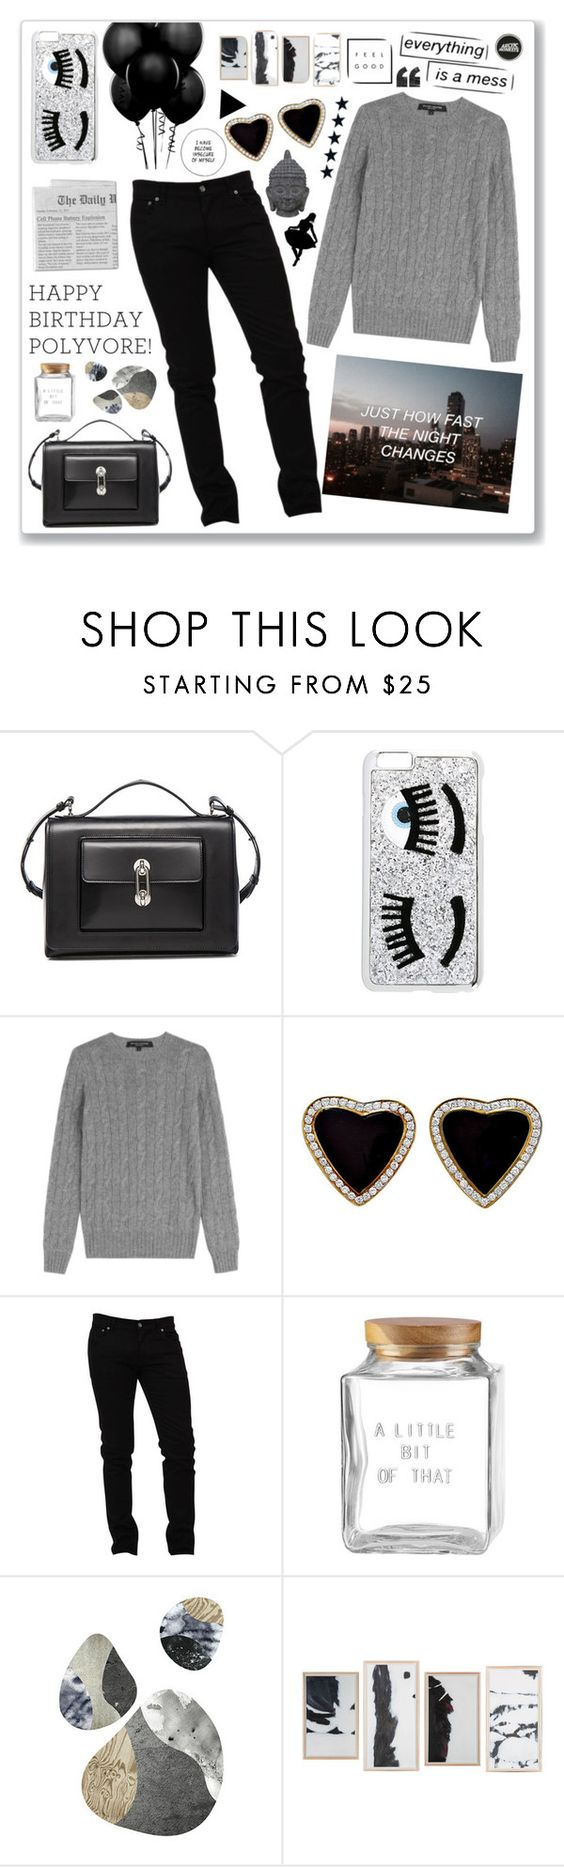 """[.1.198.] They call me crybaby, crybaby, but I don't f*cking care..."" by imlola ❤ liked on Polyvore featuring Balenciaga, Chiara Ferragni, Ralph Lauren Black Label, Dolce&Gabbana, Kate Spade and Three Hands"